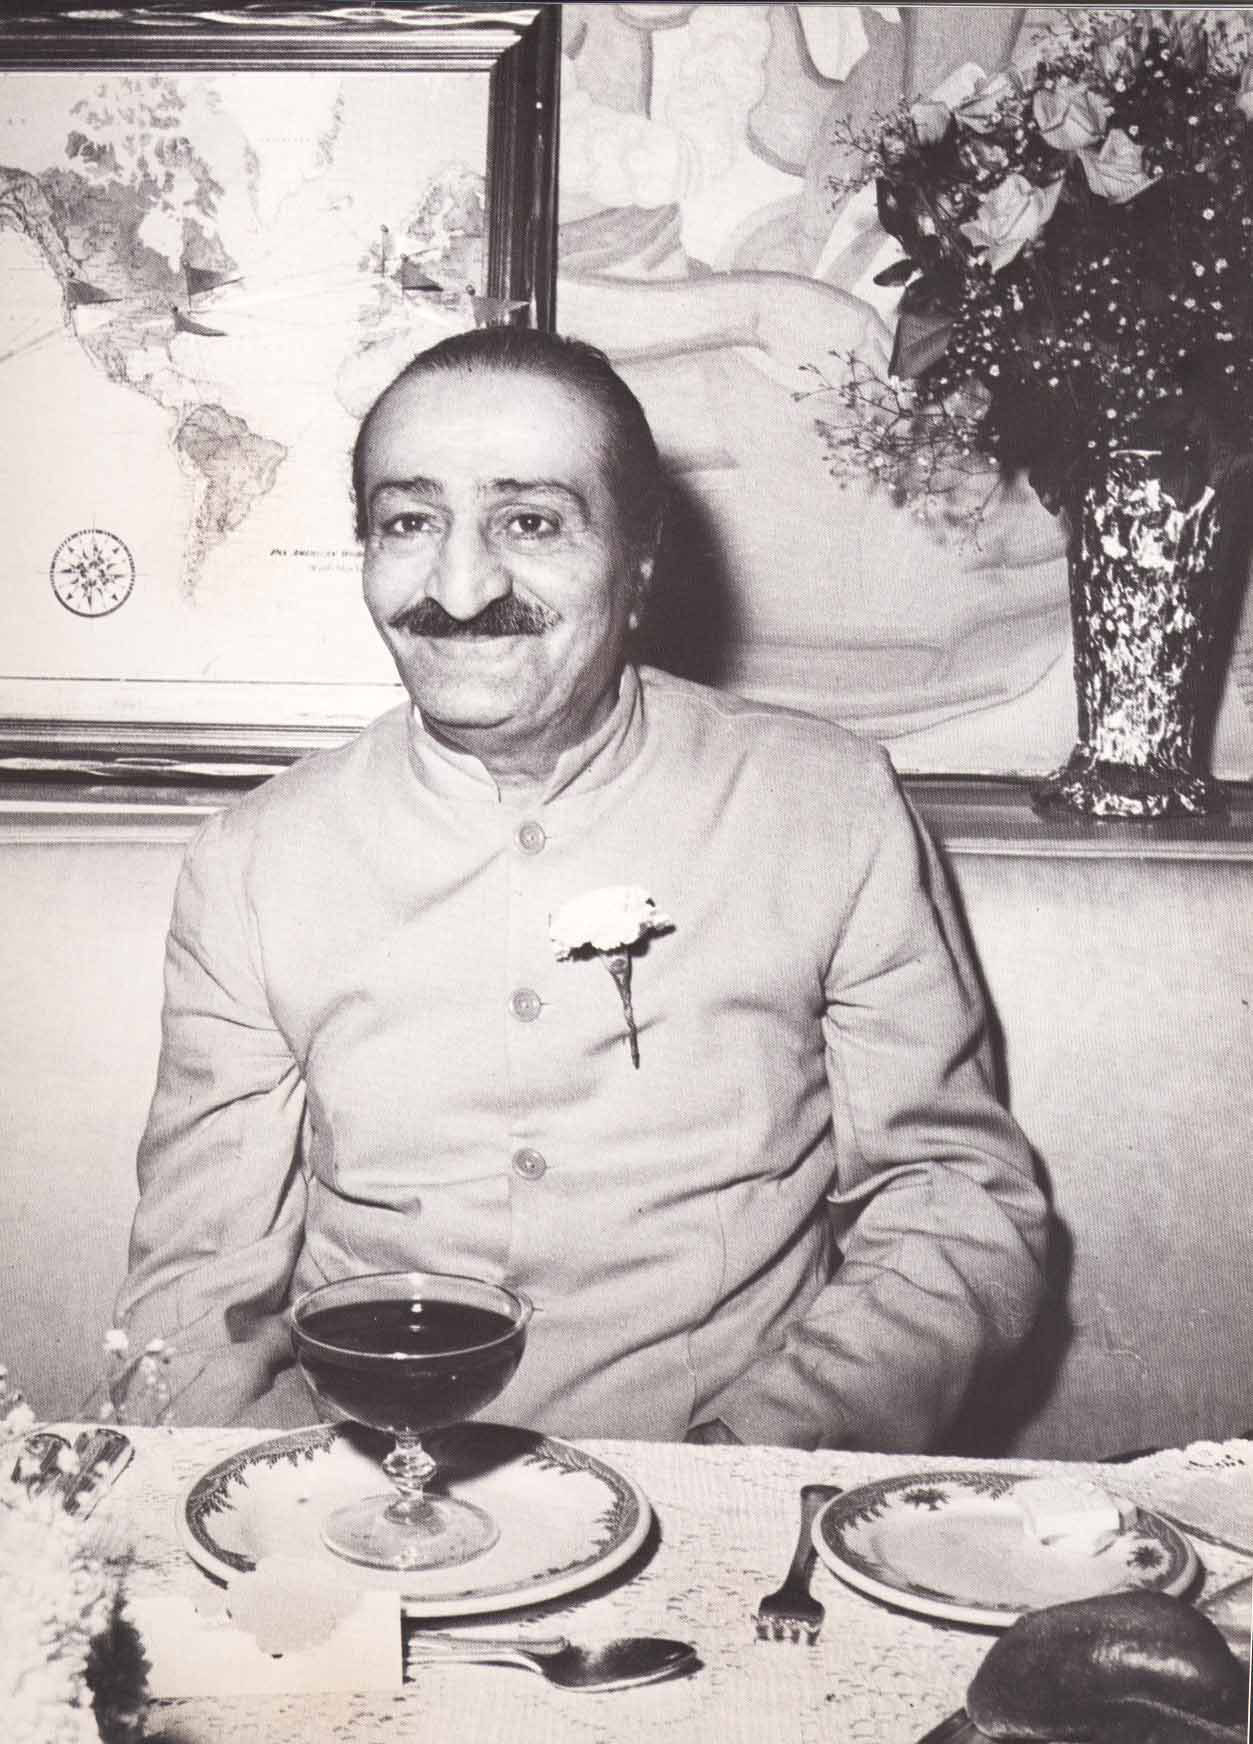 AVATAR MEHER BABA at the reception for Him at Longchamps Restaurant in New York City in 1956. (Image:  Meher Baba Travels )